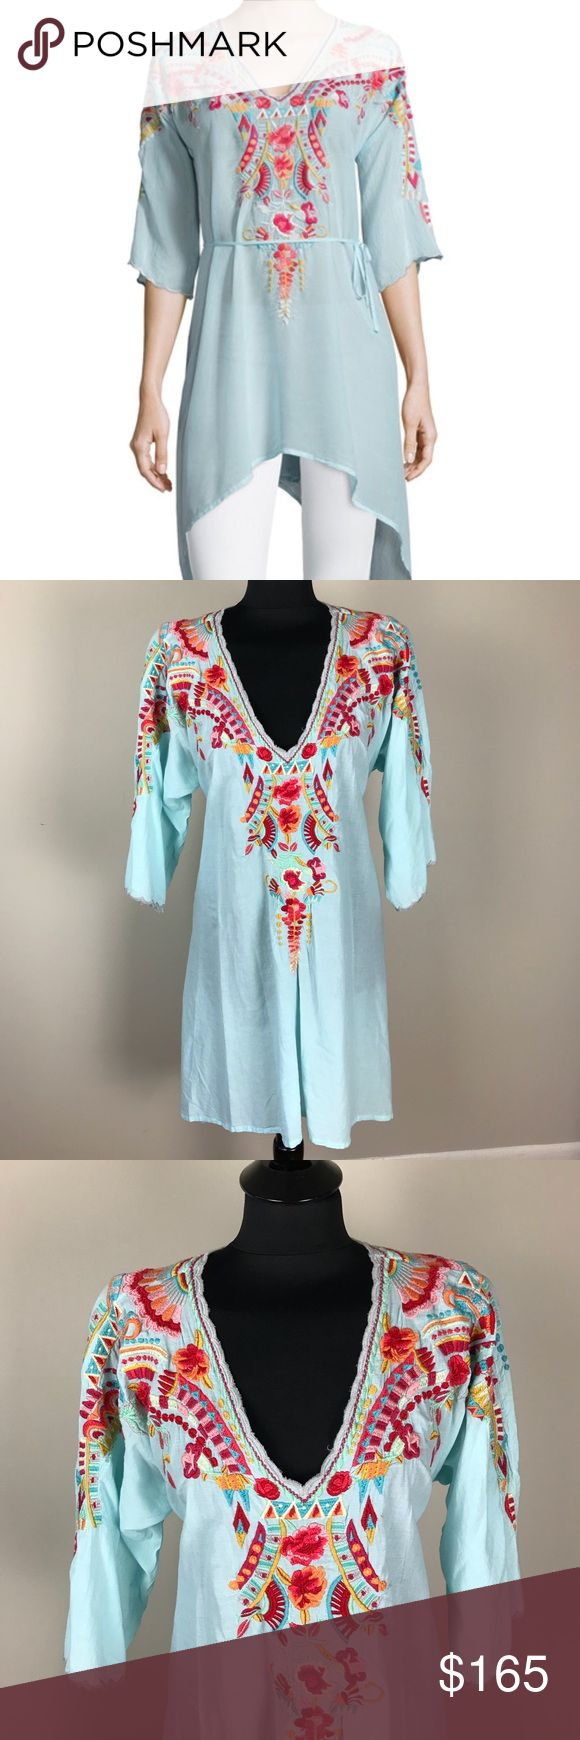 Johnny Was Cleopatra Tunic NWT New with tags beautiful sky blue tunic top with multi-color embroidery. Tie detail in back. Johnny Was Tops Tunics